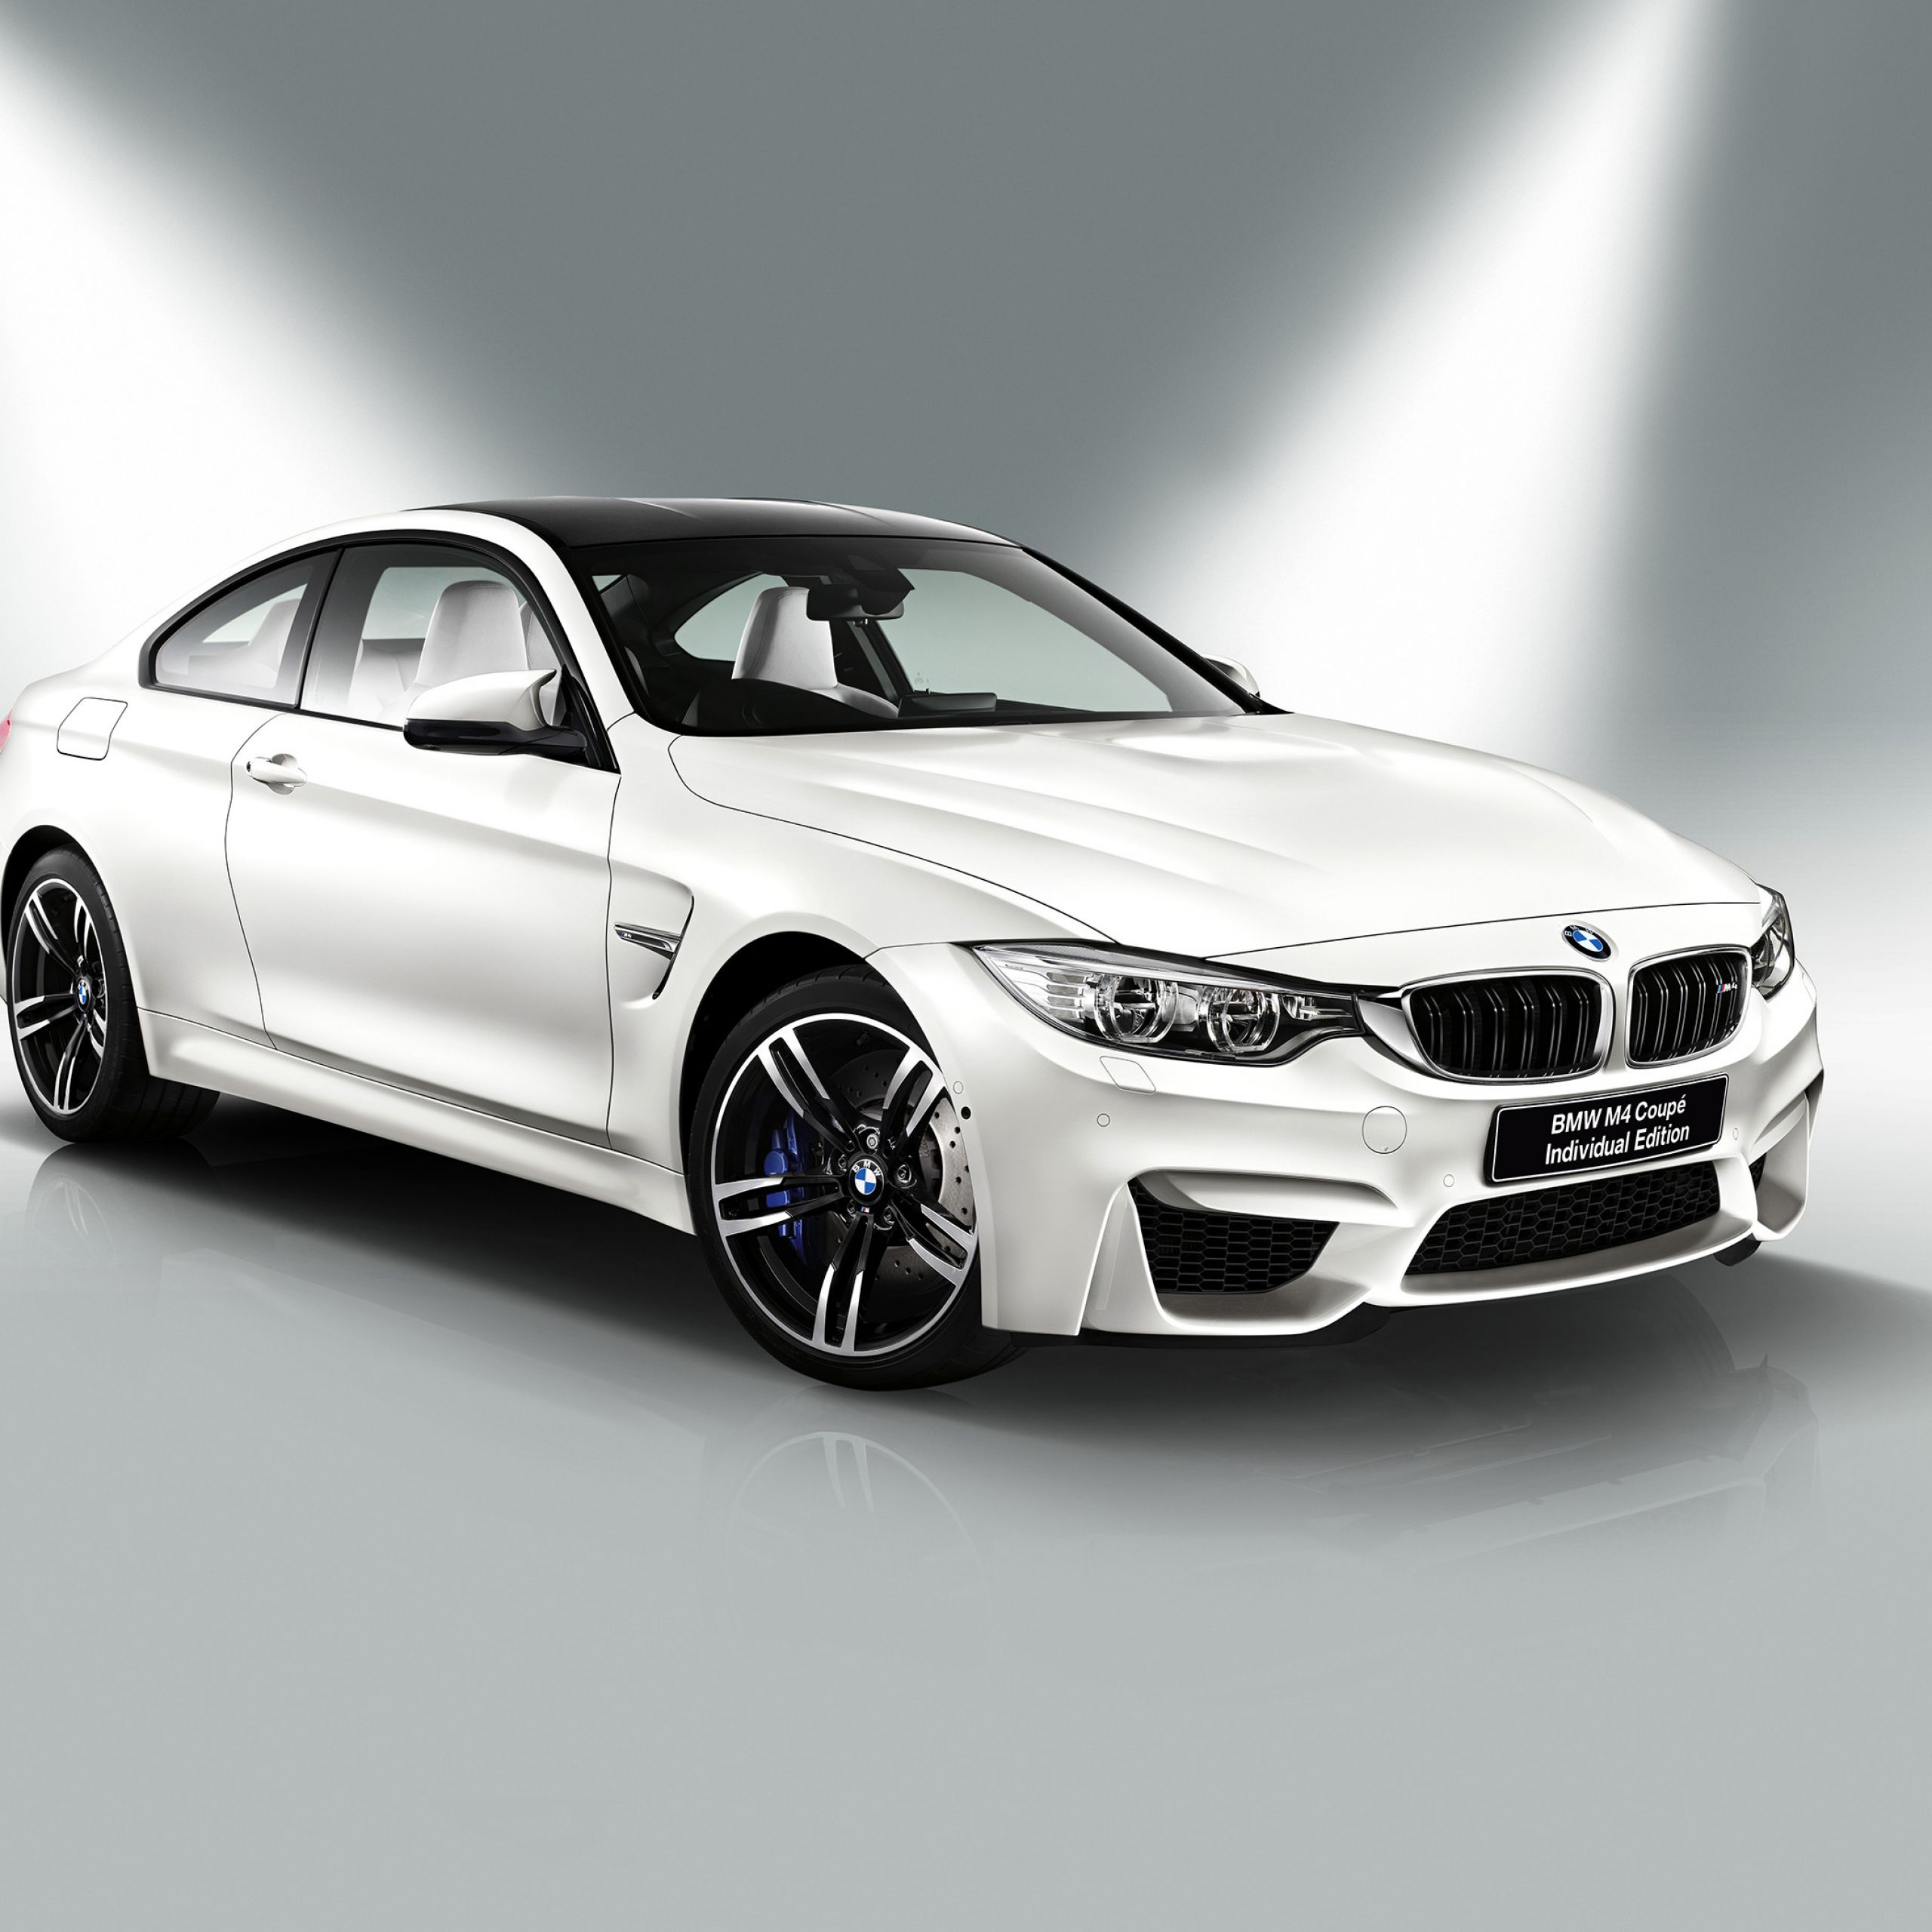 2015 Bmw M4 New Bmw M4 Coupe Individual Edition F82 2015 Coupe Bmwpack